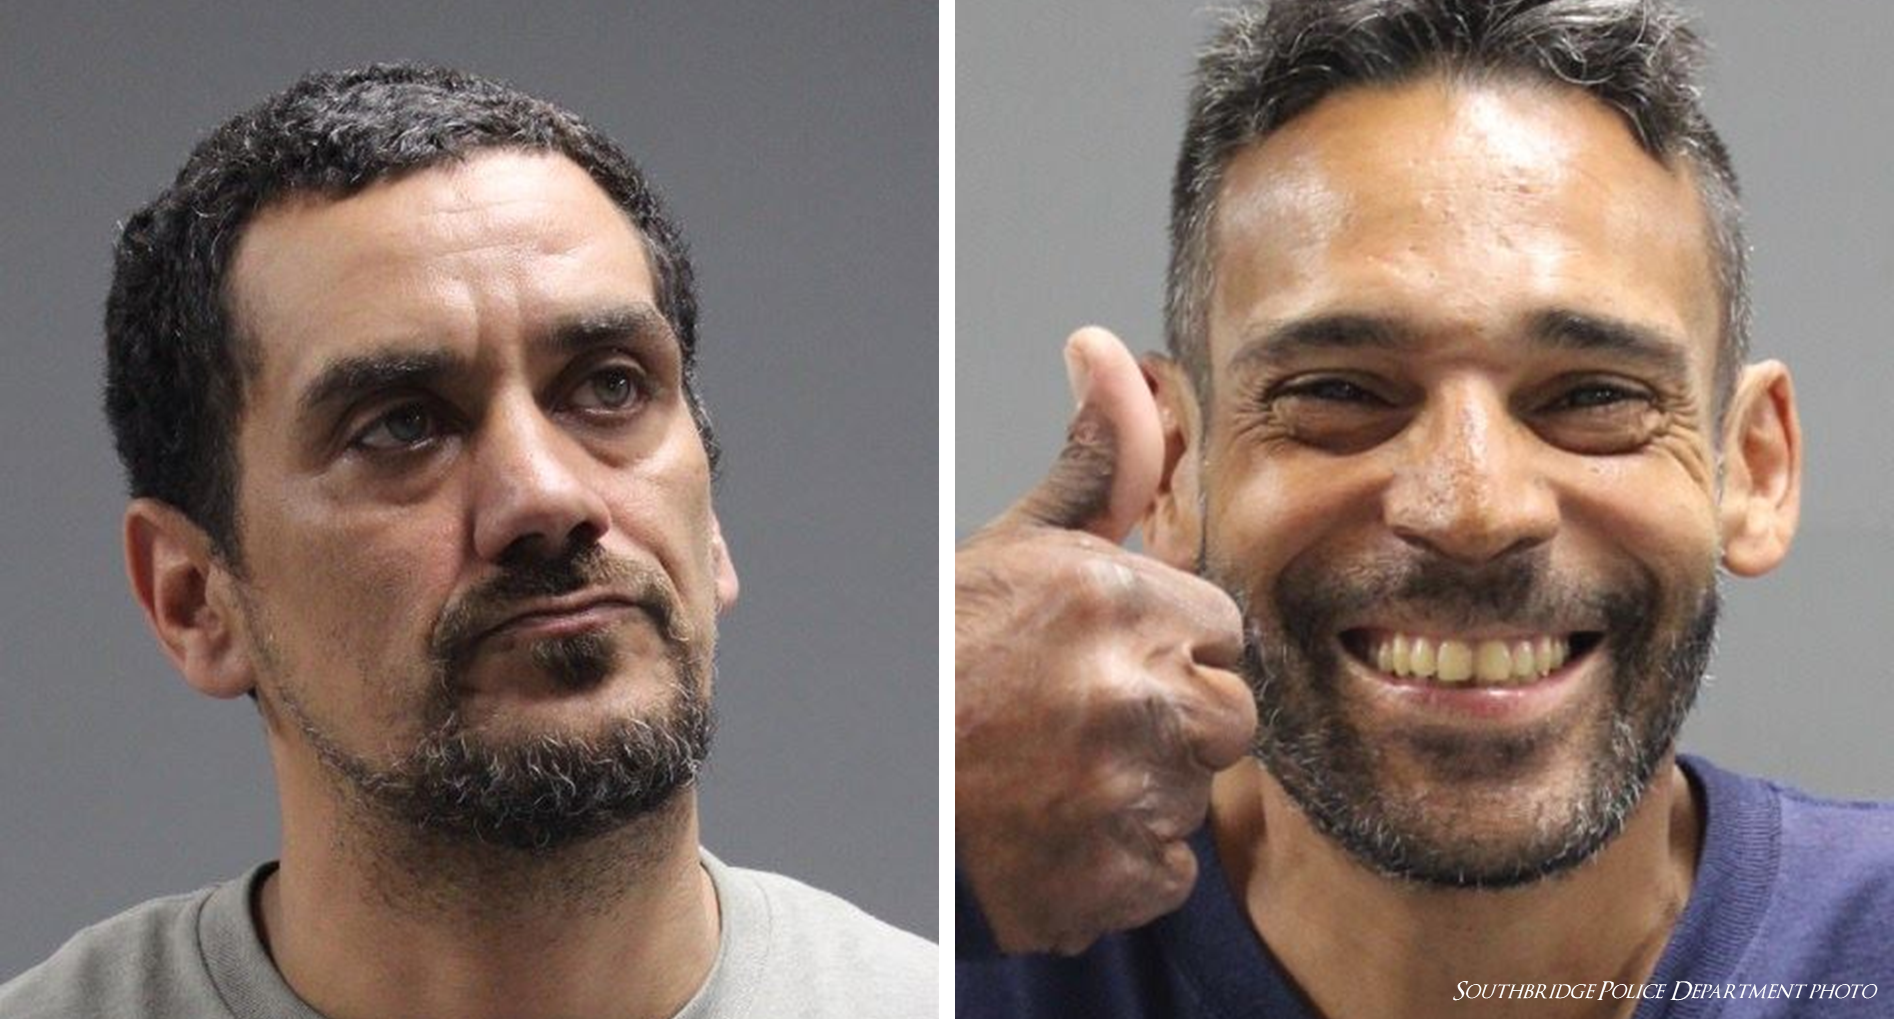 Police charge Rosario, Serrano with heroin possession